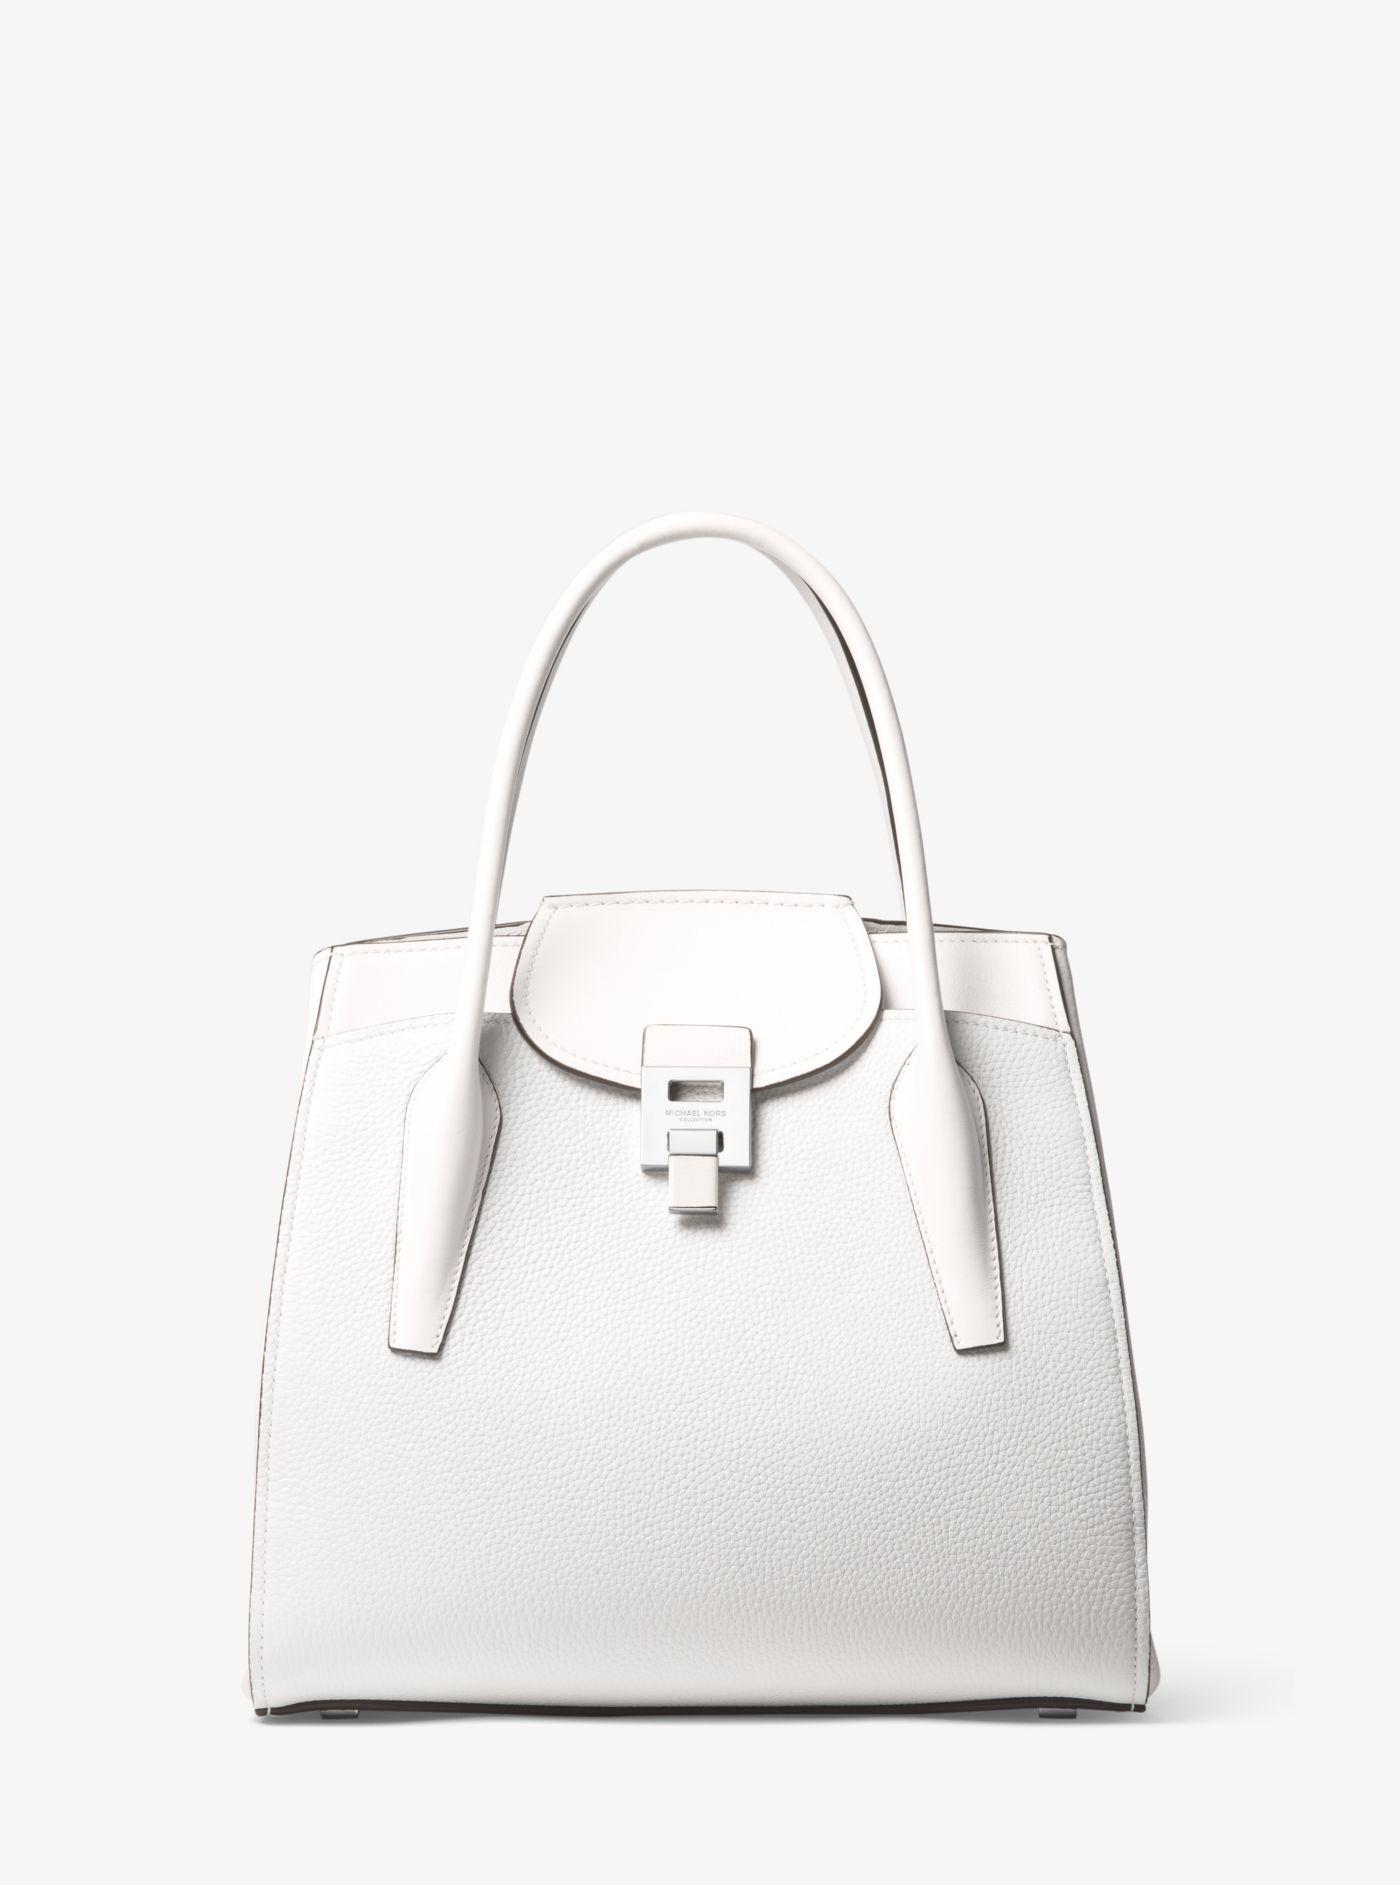 a90a7a31d8c0 Lyst - Michael Kors Bancroft Large Pebbled Calf Leather Satchel in White